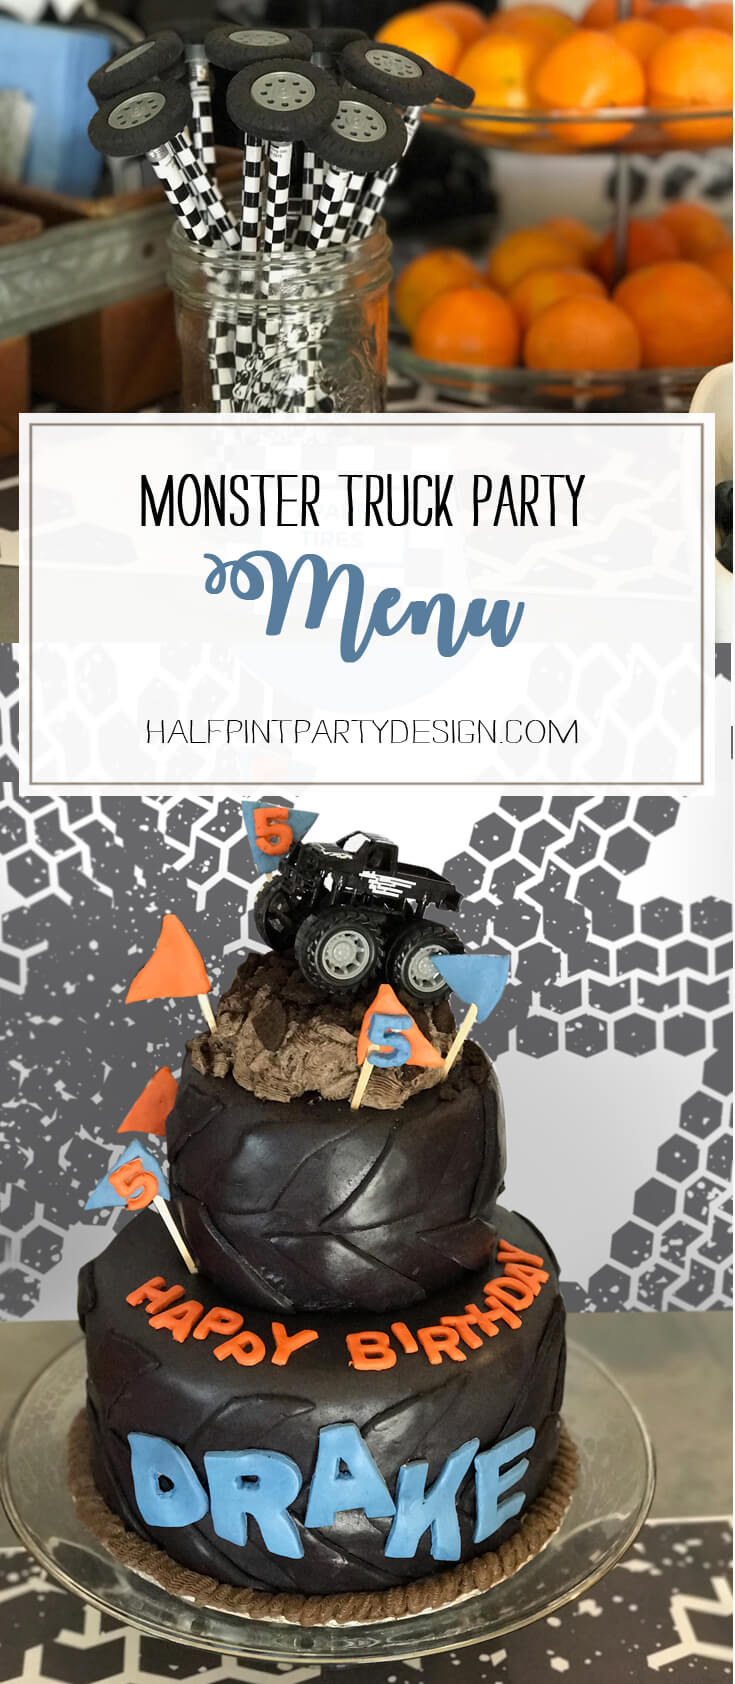 Designing the menu to fit the theme is half the fun! Creating fun names and labels makes simple food more interesting for the guests. Monster Truck Party Menu | Halfpint Design - party food, event menu